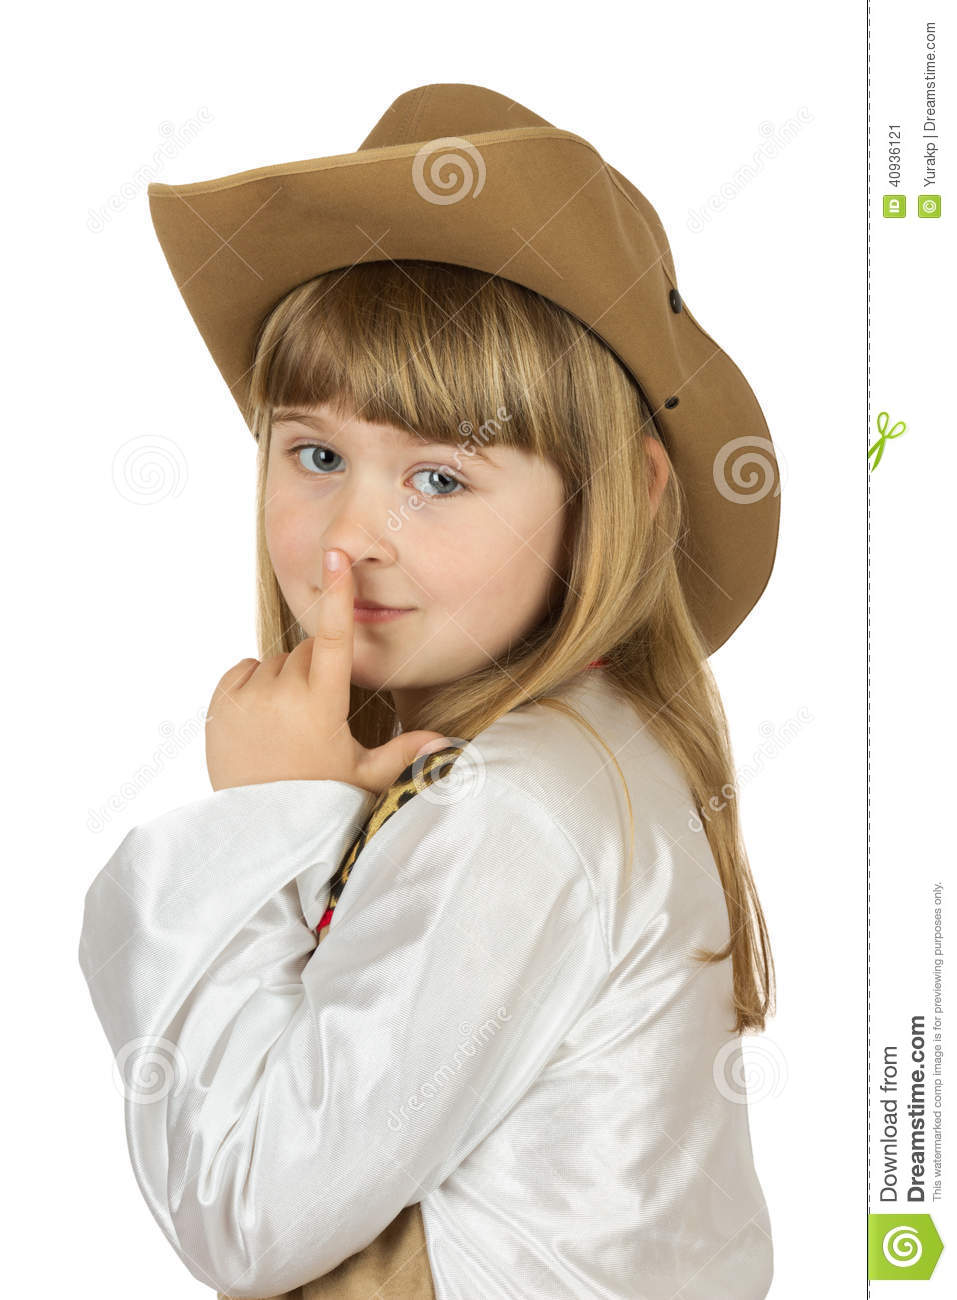 cb0161e5efbcf Pretty Little Girl In Cowboy Hat On The White Background Stock Image ...